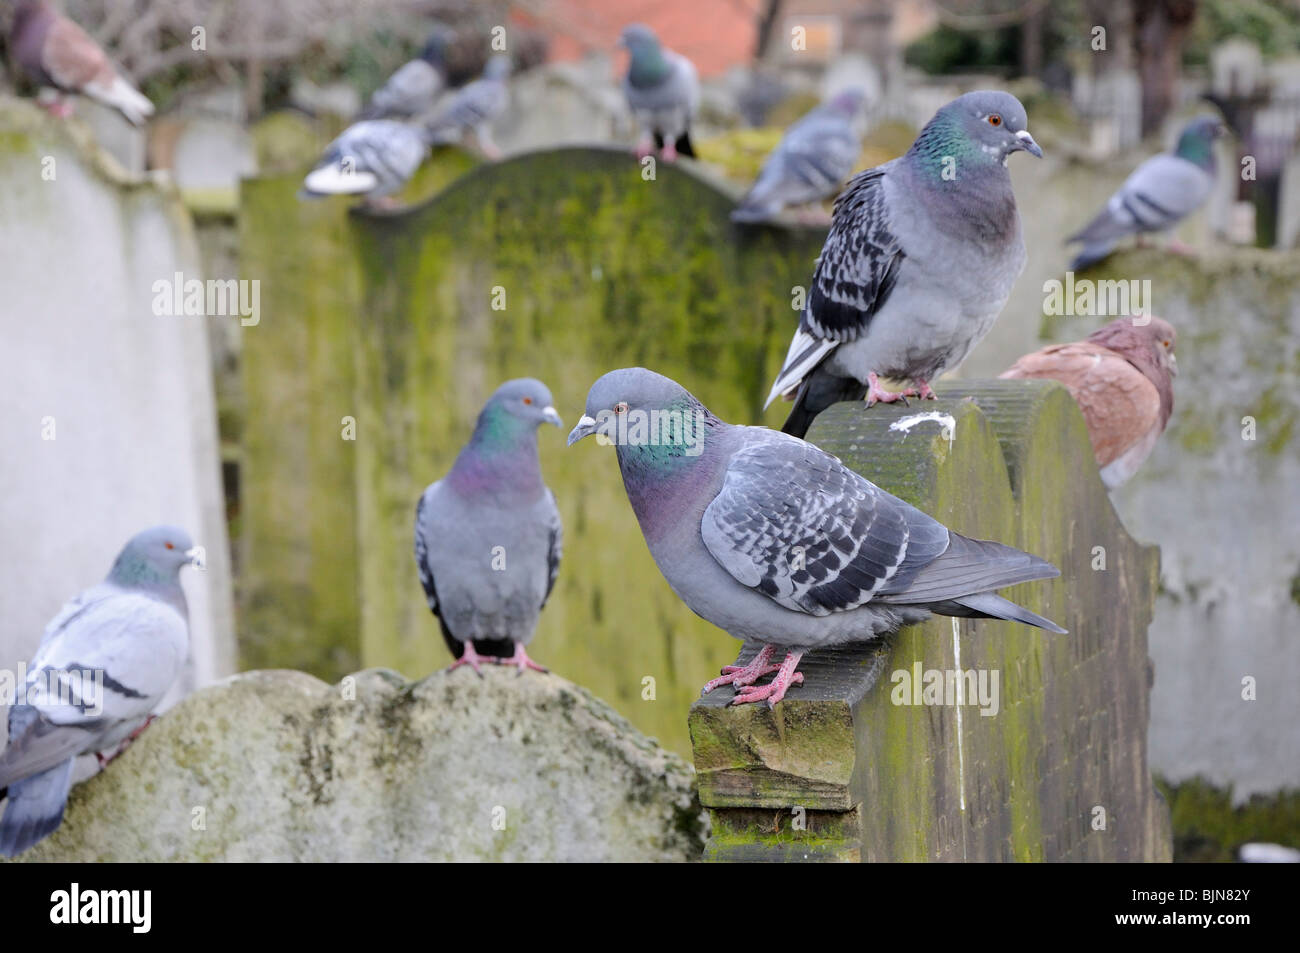 London pigeons in Bunhill Fields, City Road, London, England, UK. - Stock Image